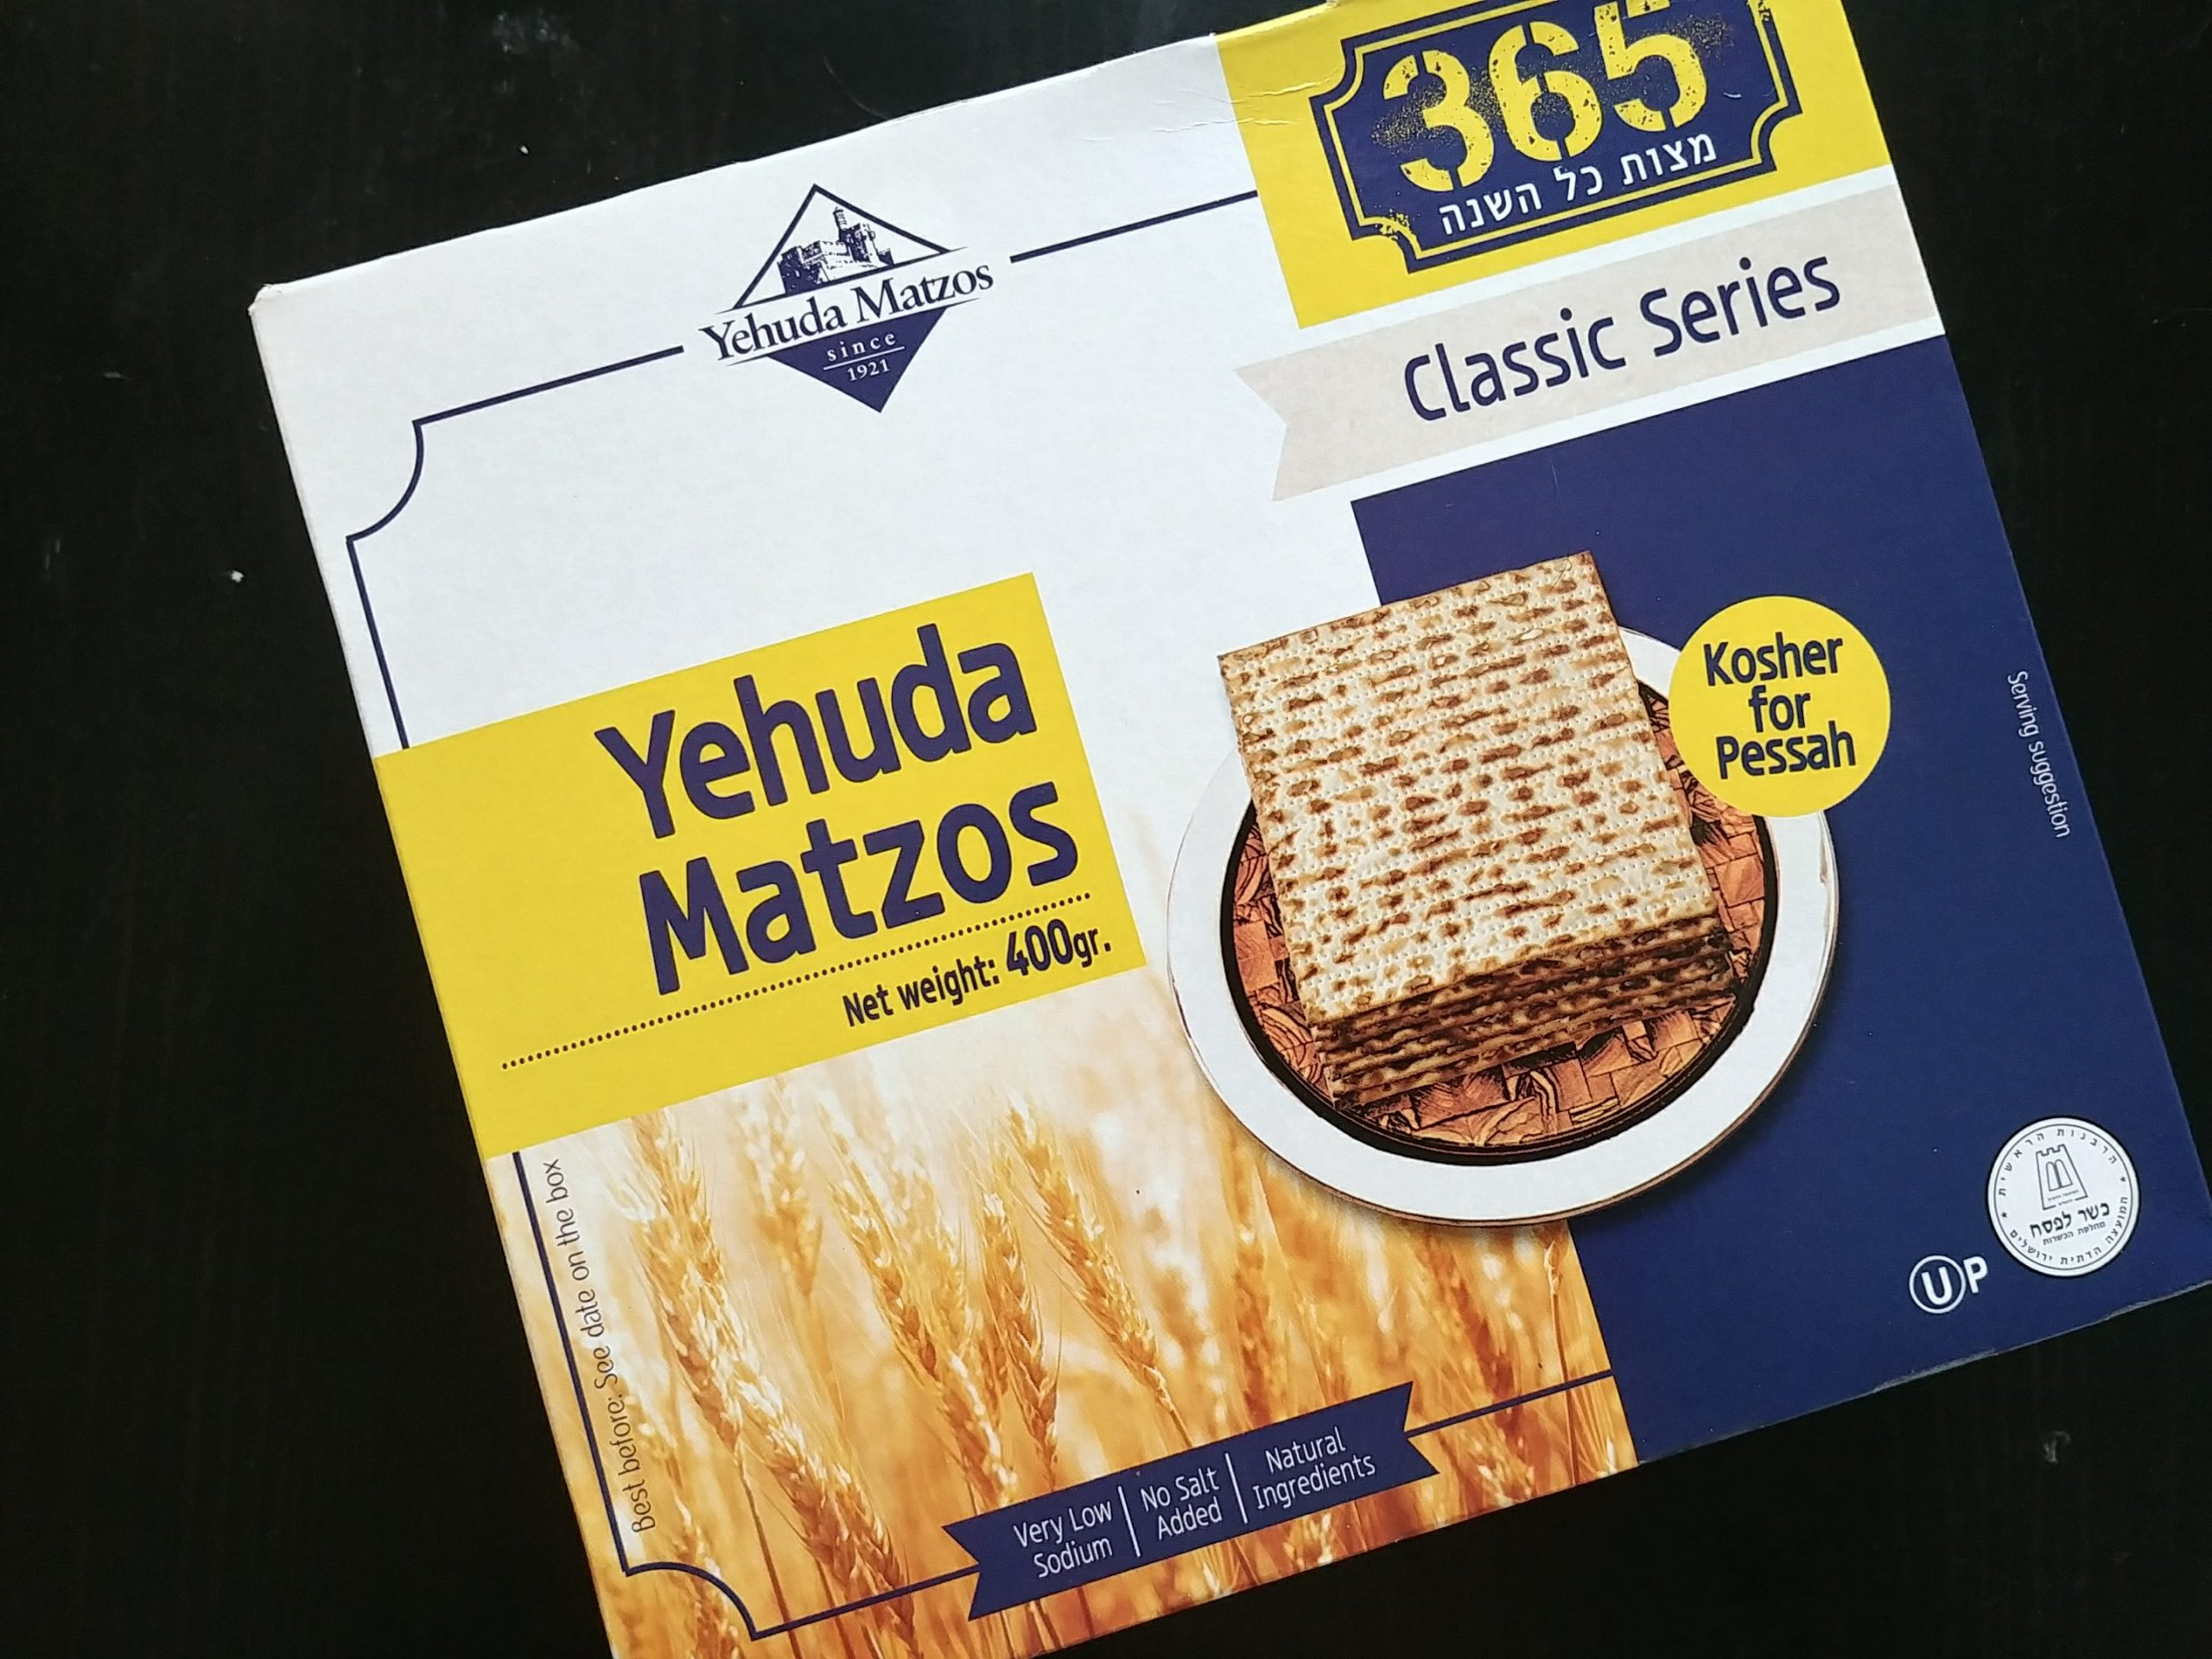 A box of matzah